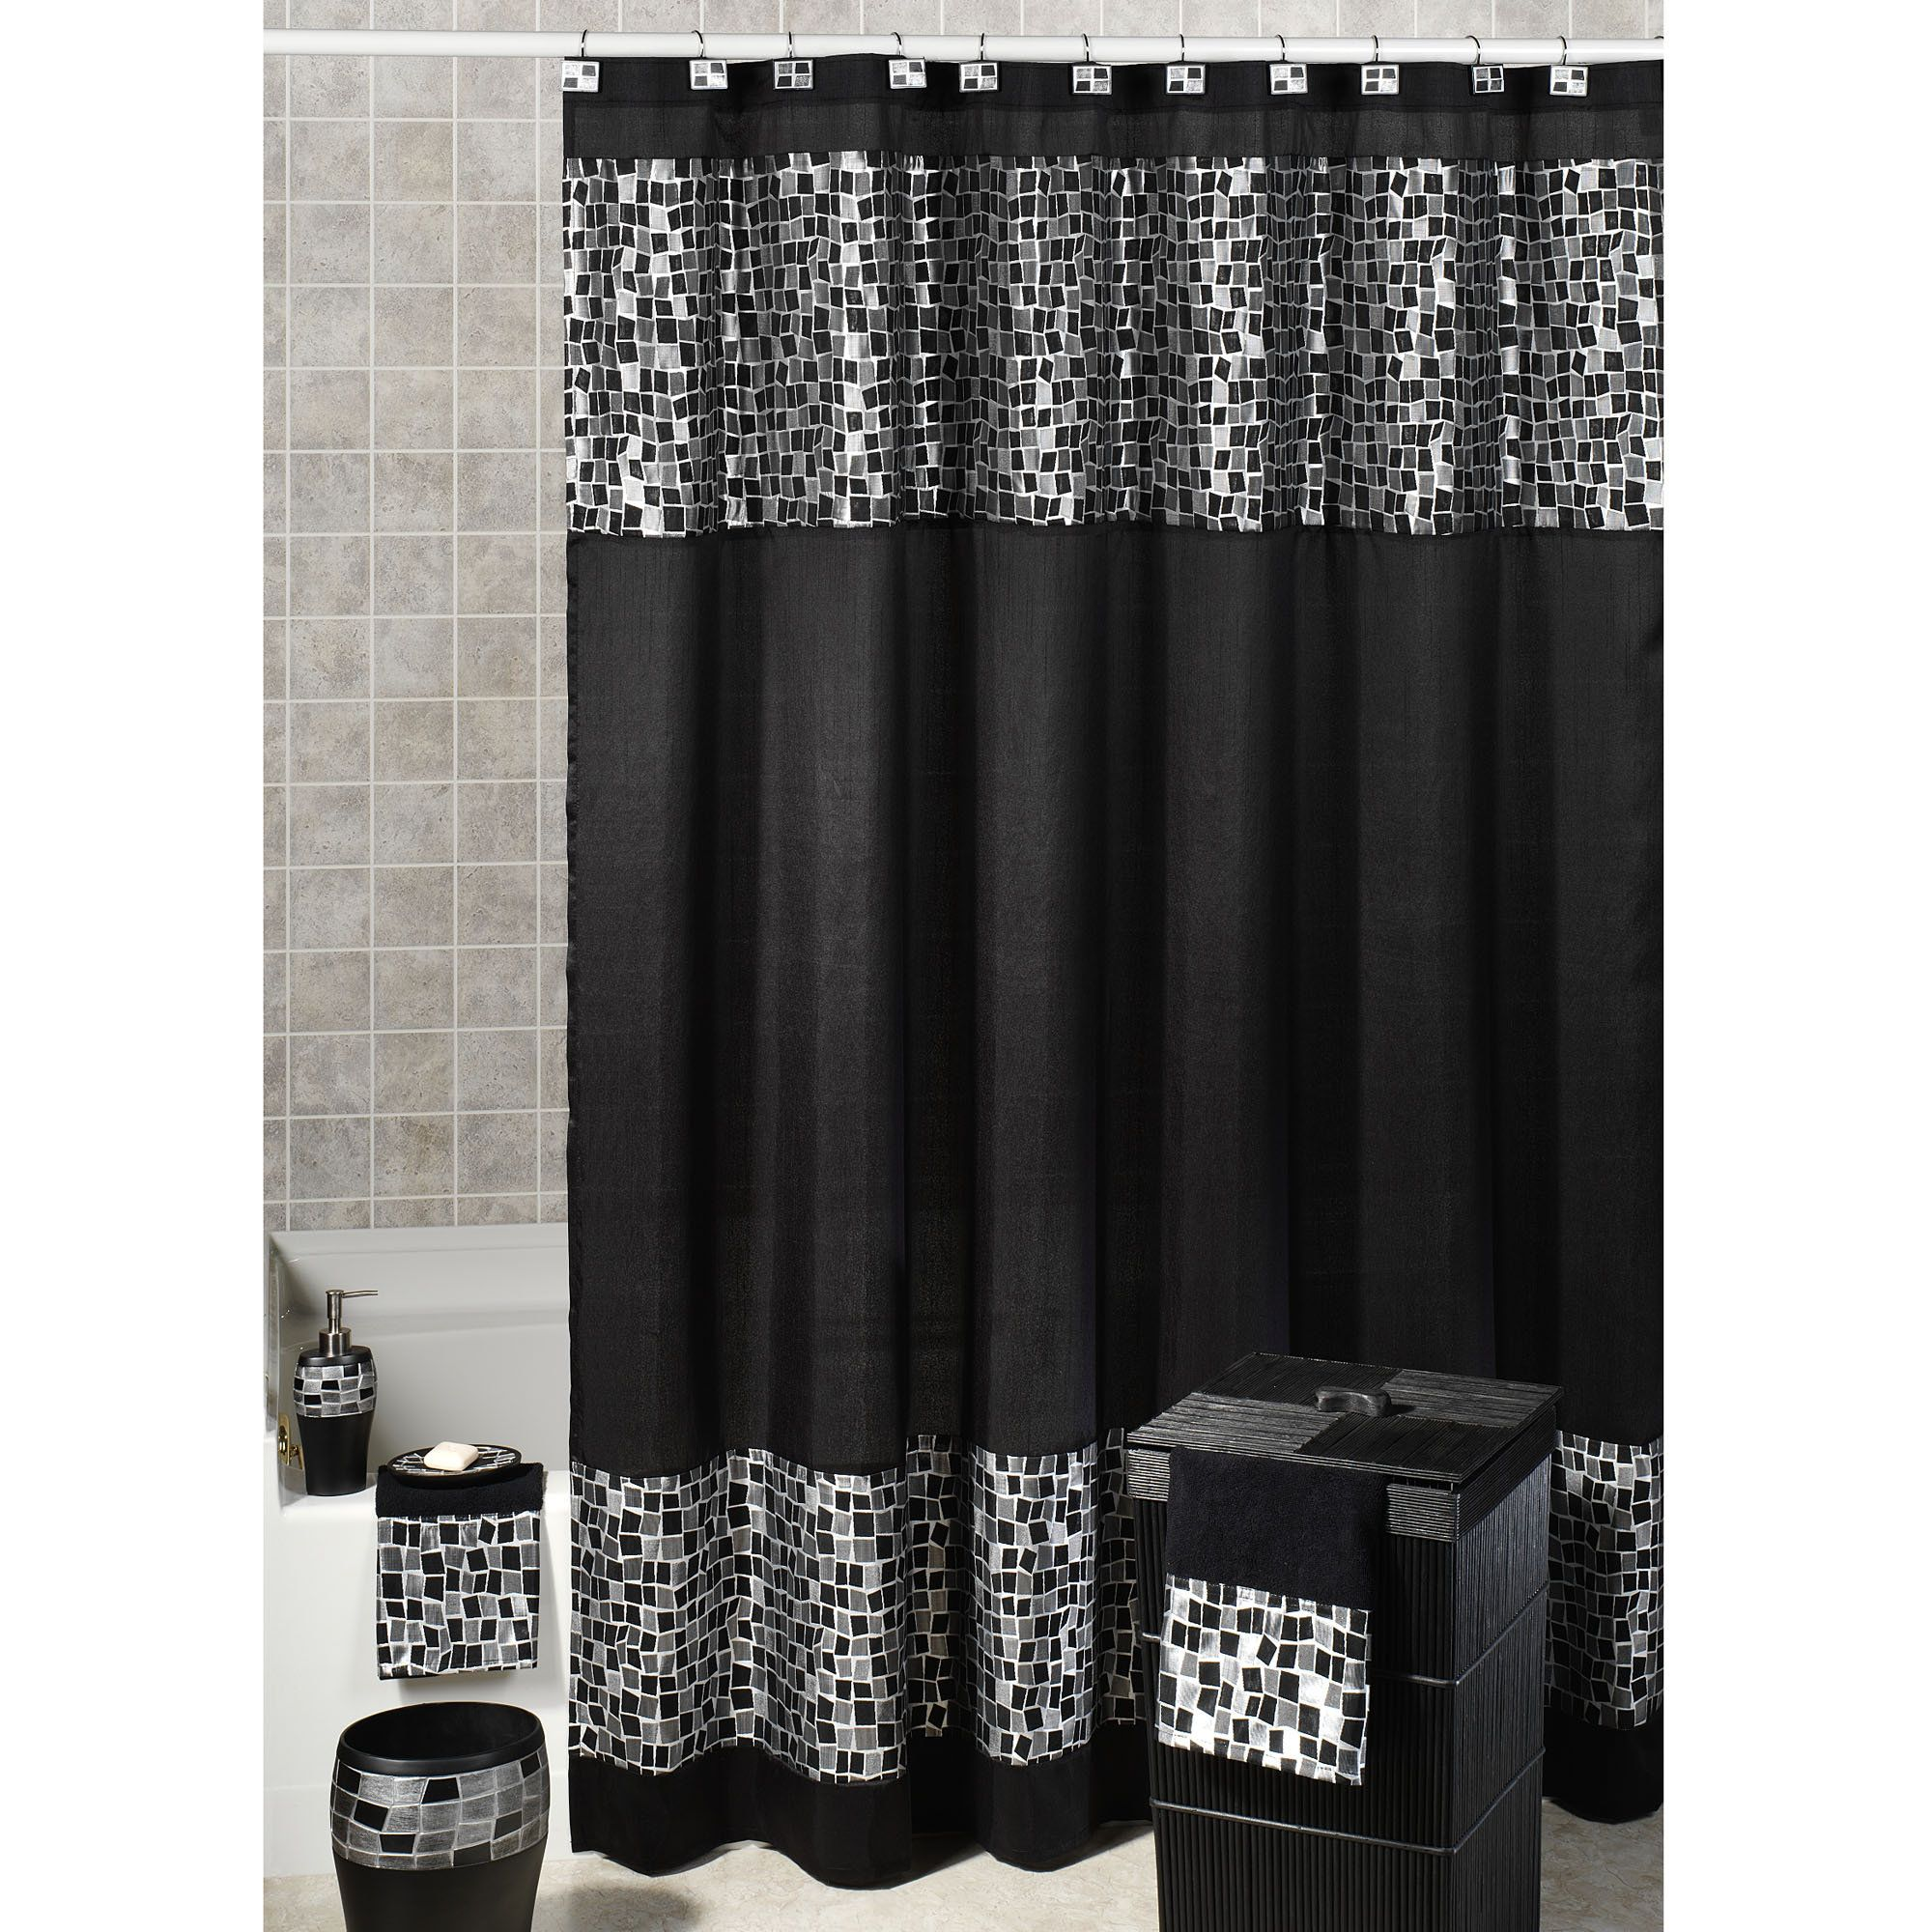 Black and silver shower curtains